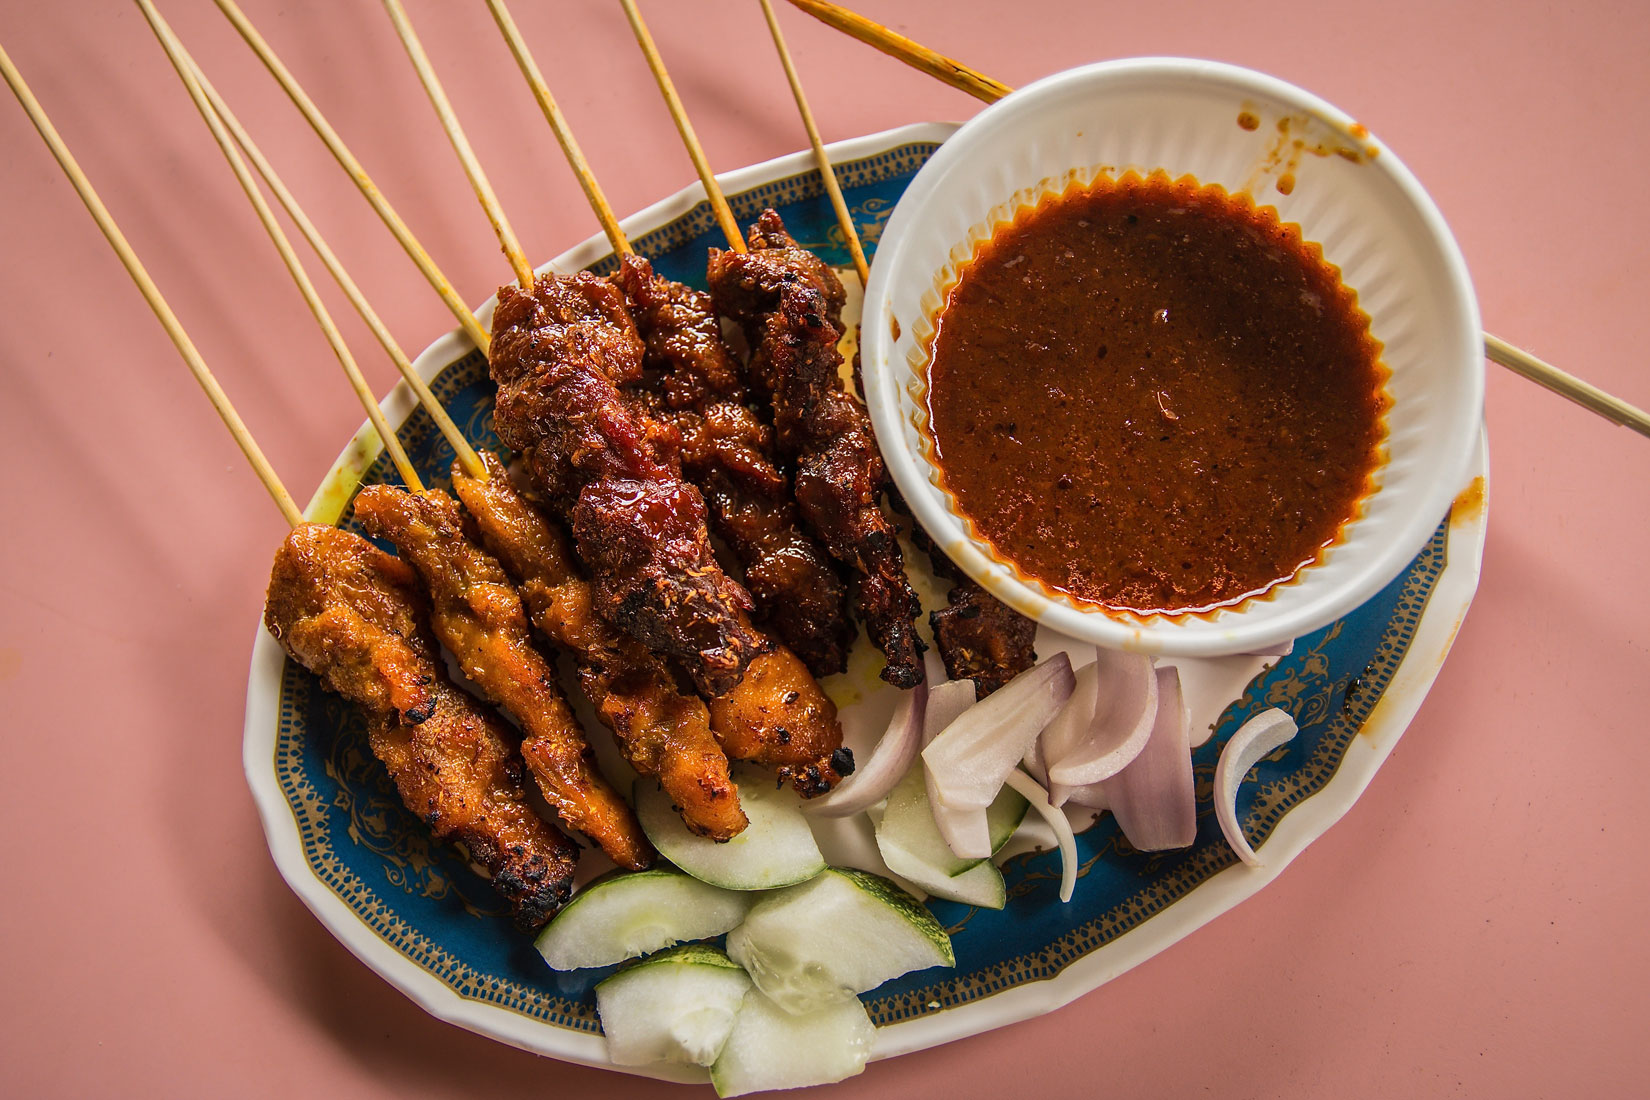 An ornate dish filled with Singaporean satay and a dish of peanut sauce.